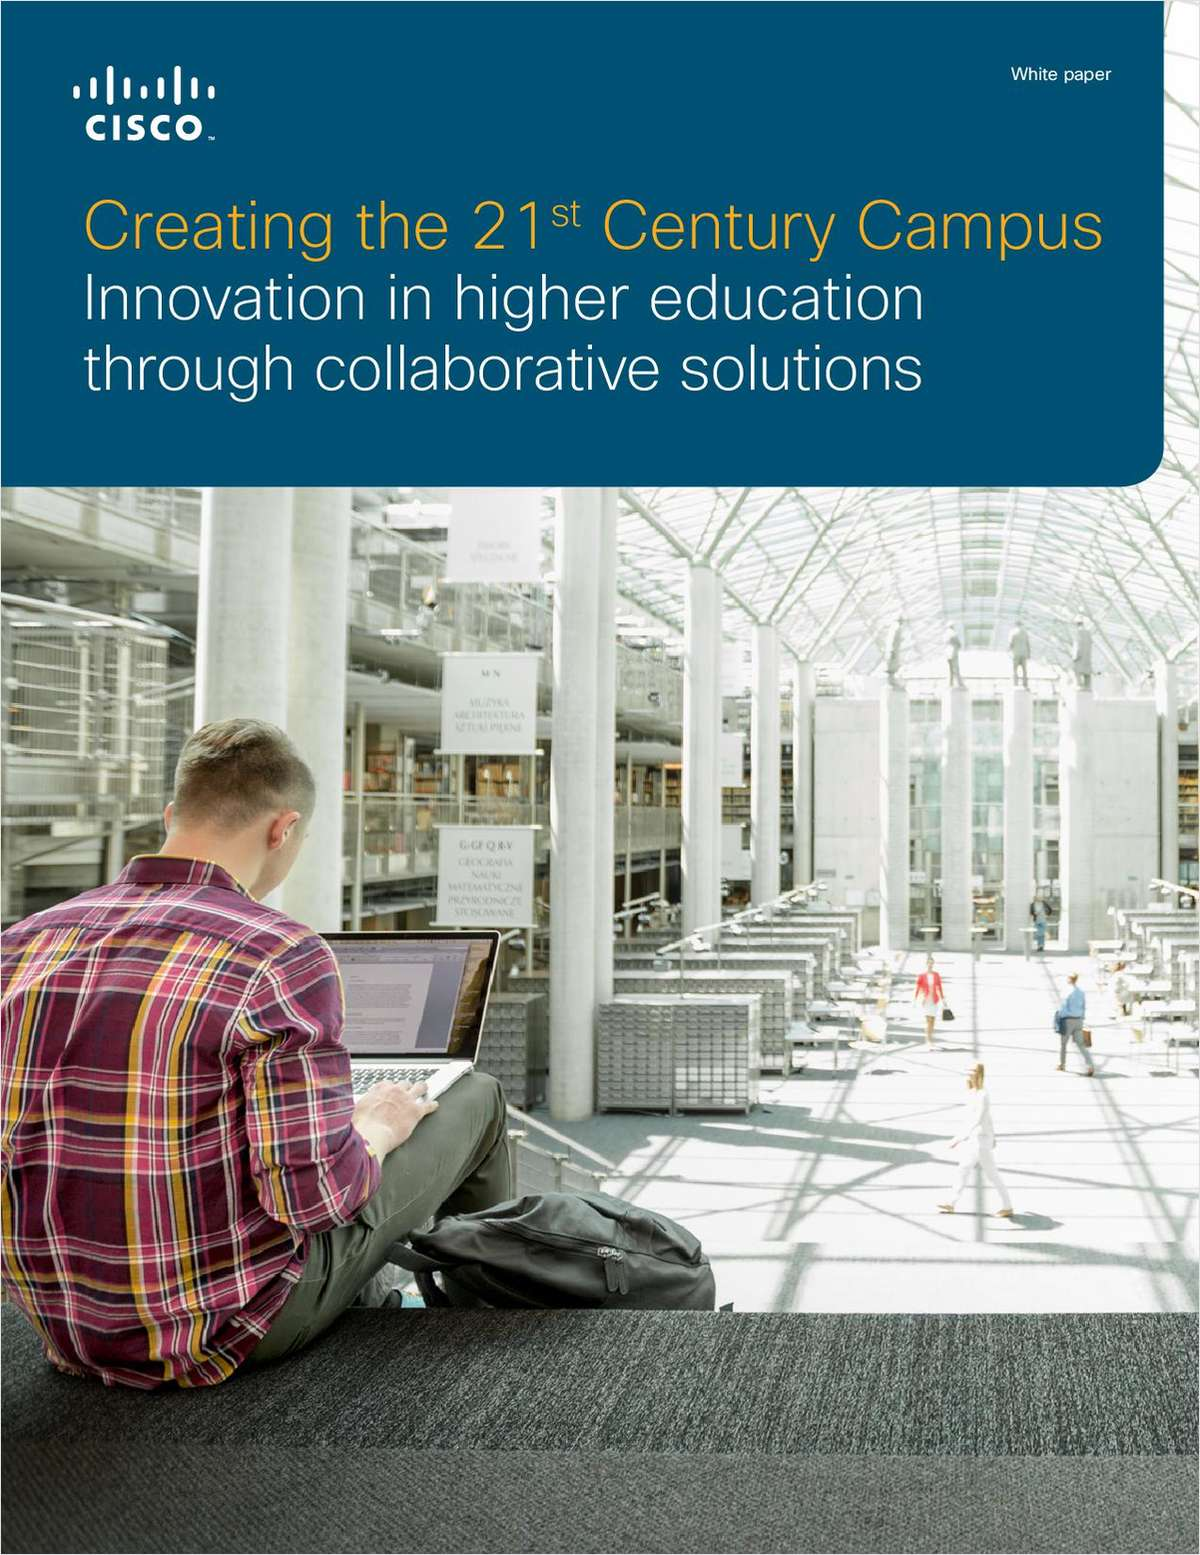 Creating the 21st Century Campus: Innovation in higher education through collaboration